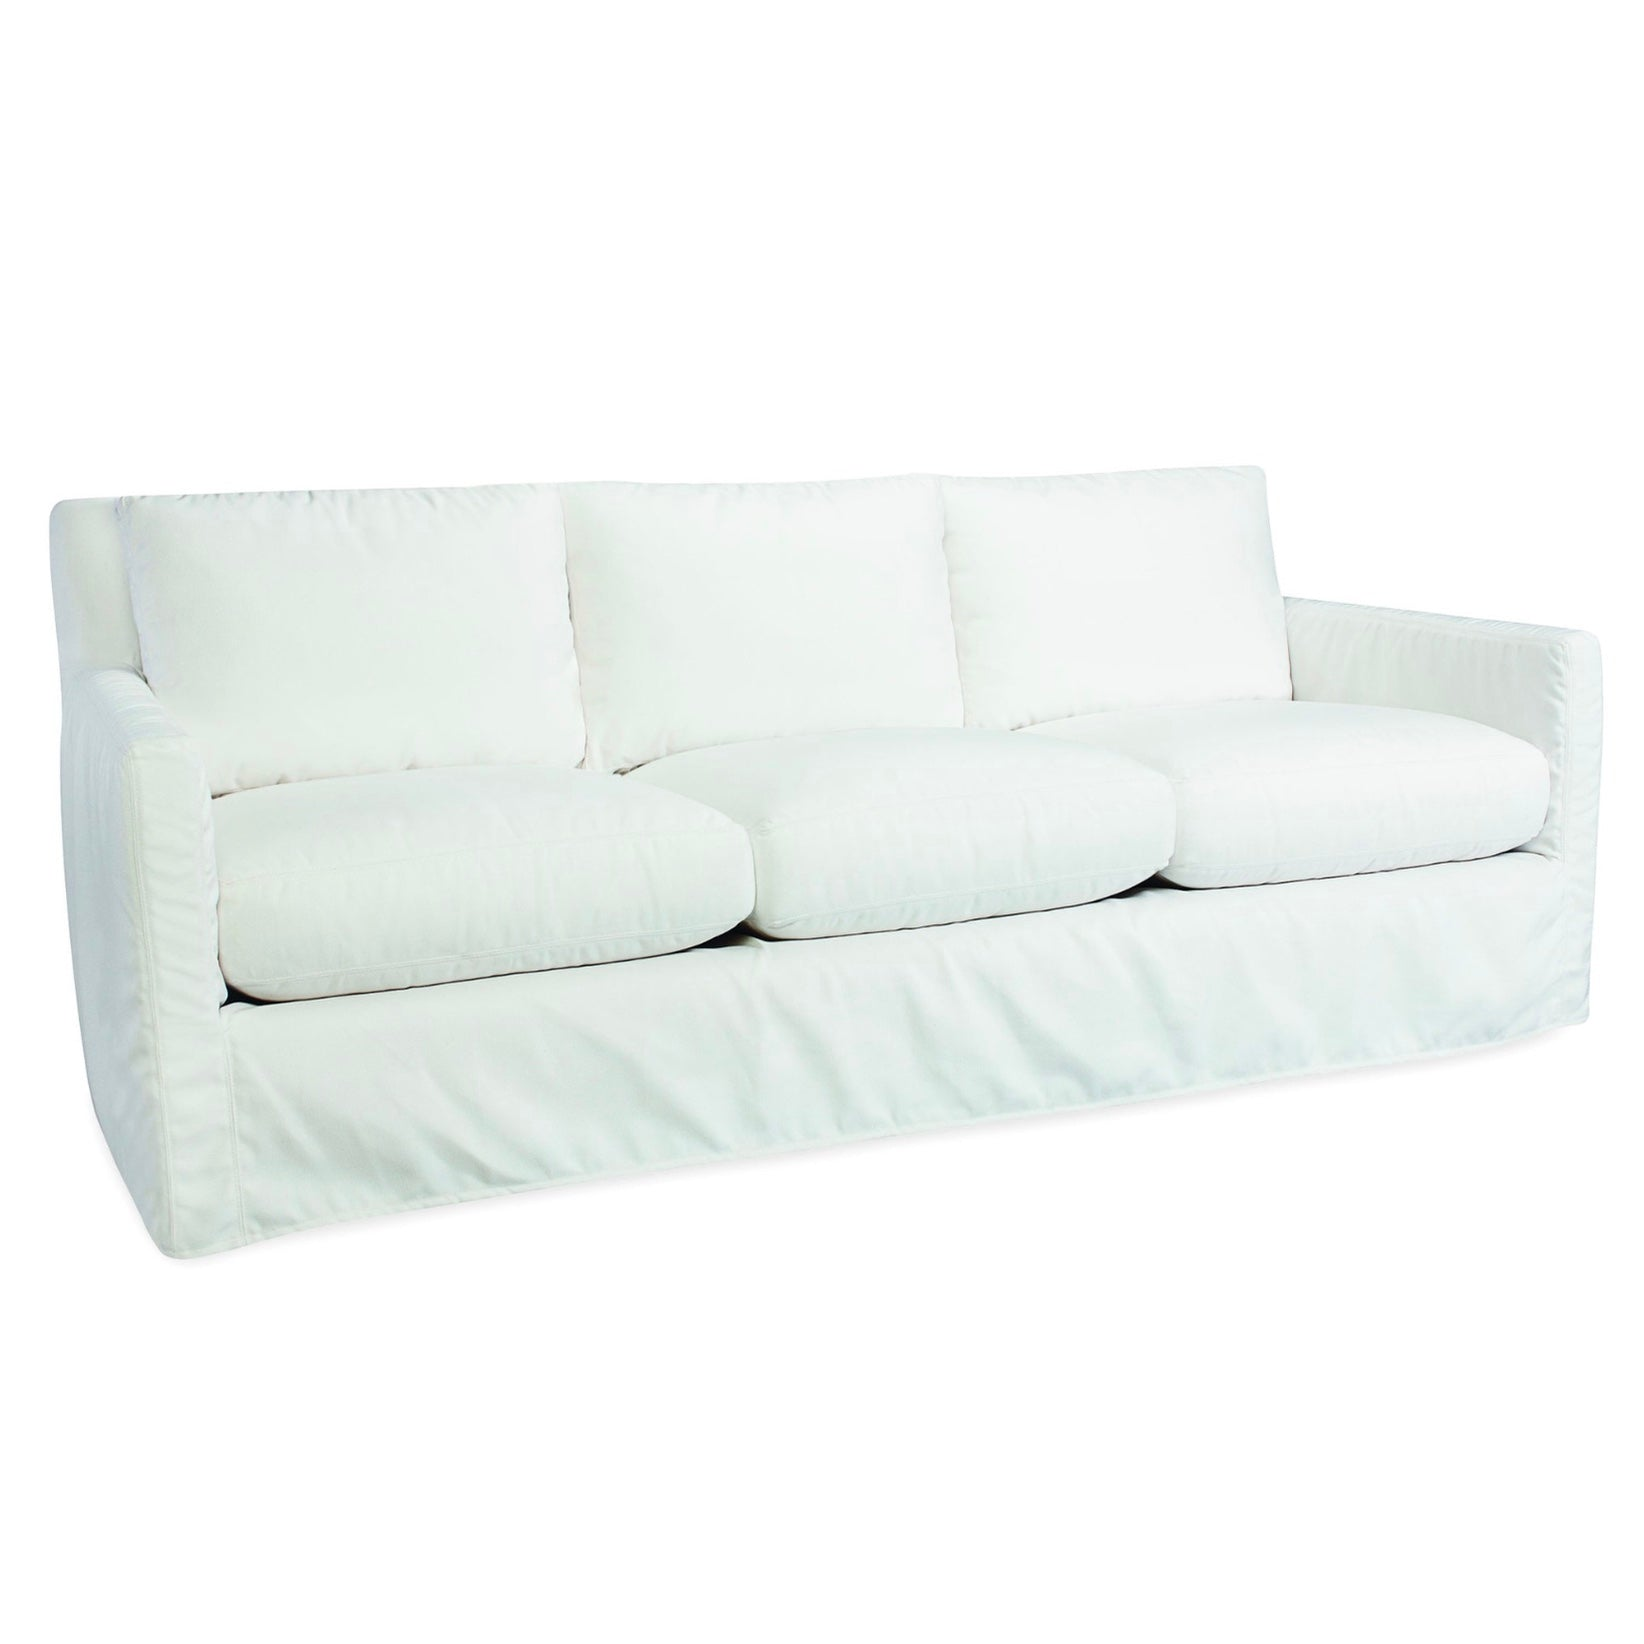 Lee Industries US112-03 Nandina Outdoor Slipcovered Sofa